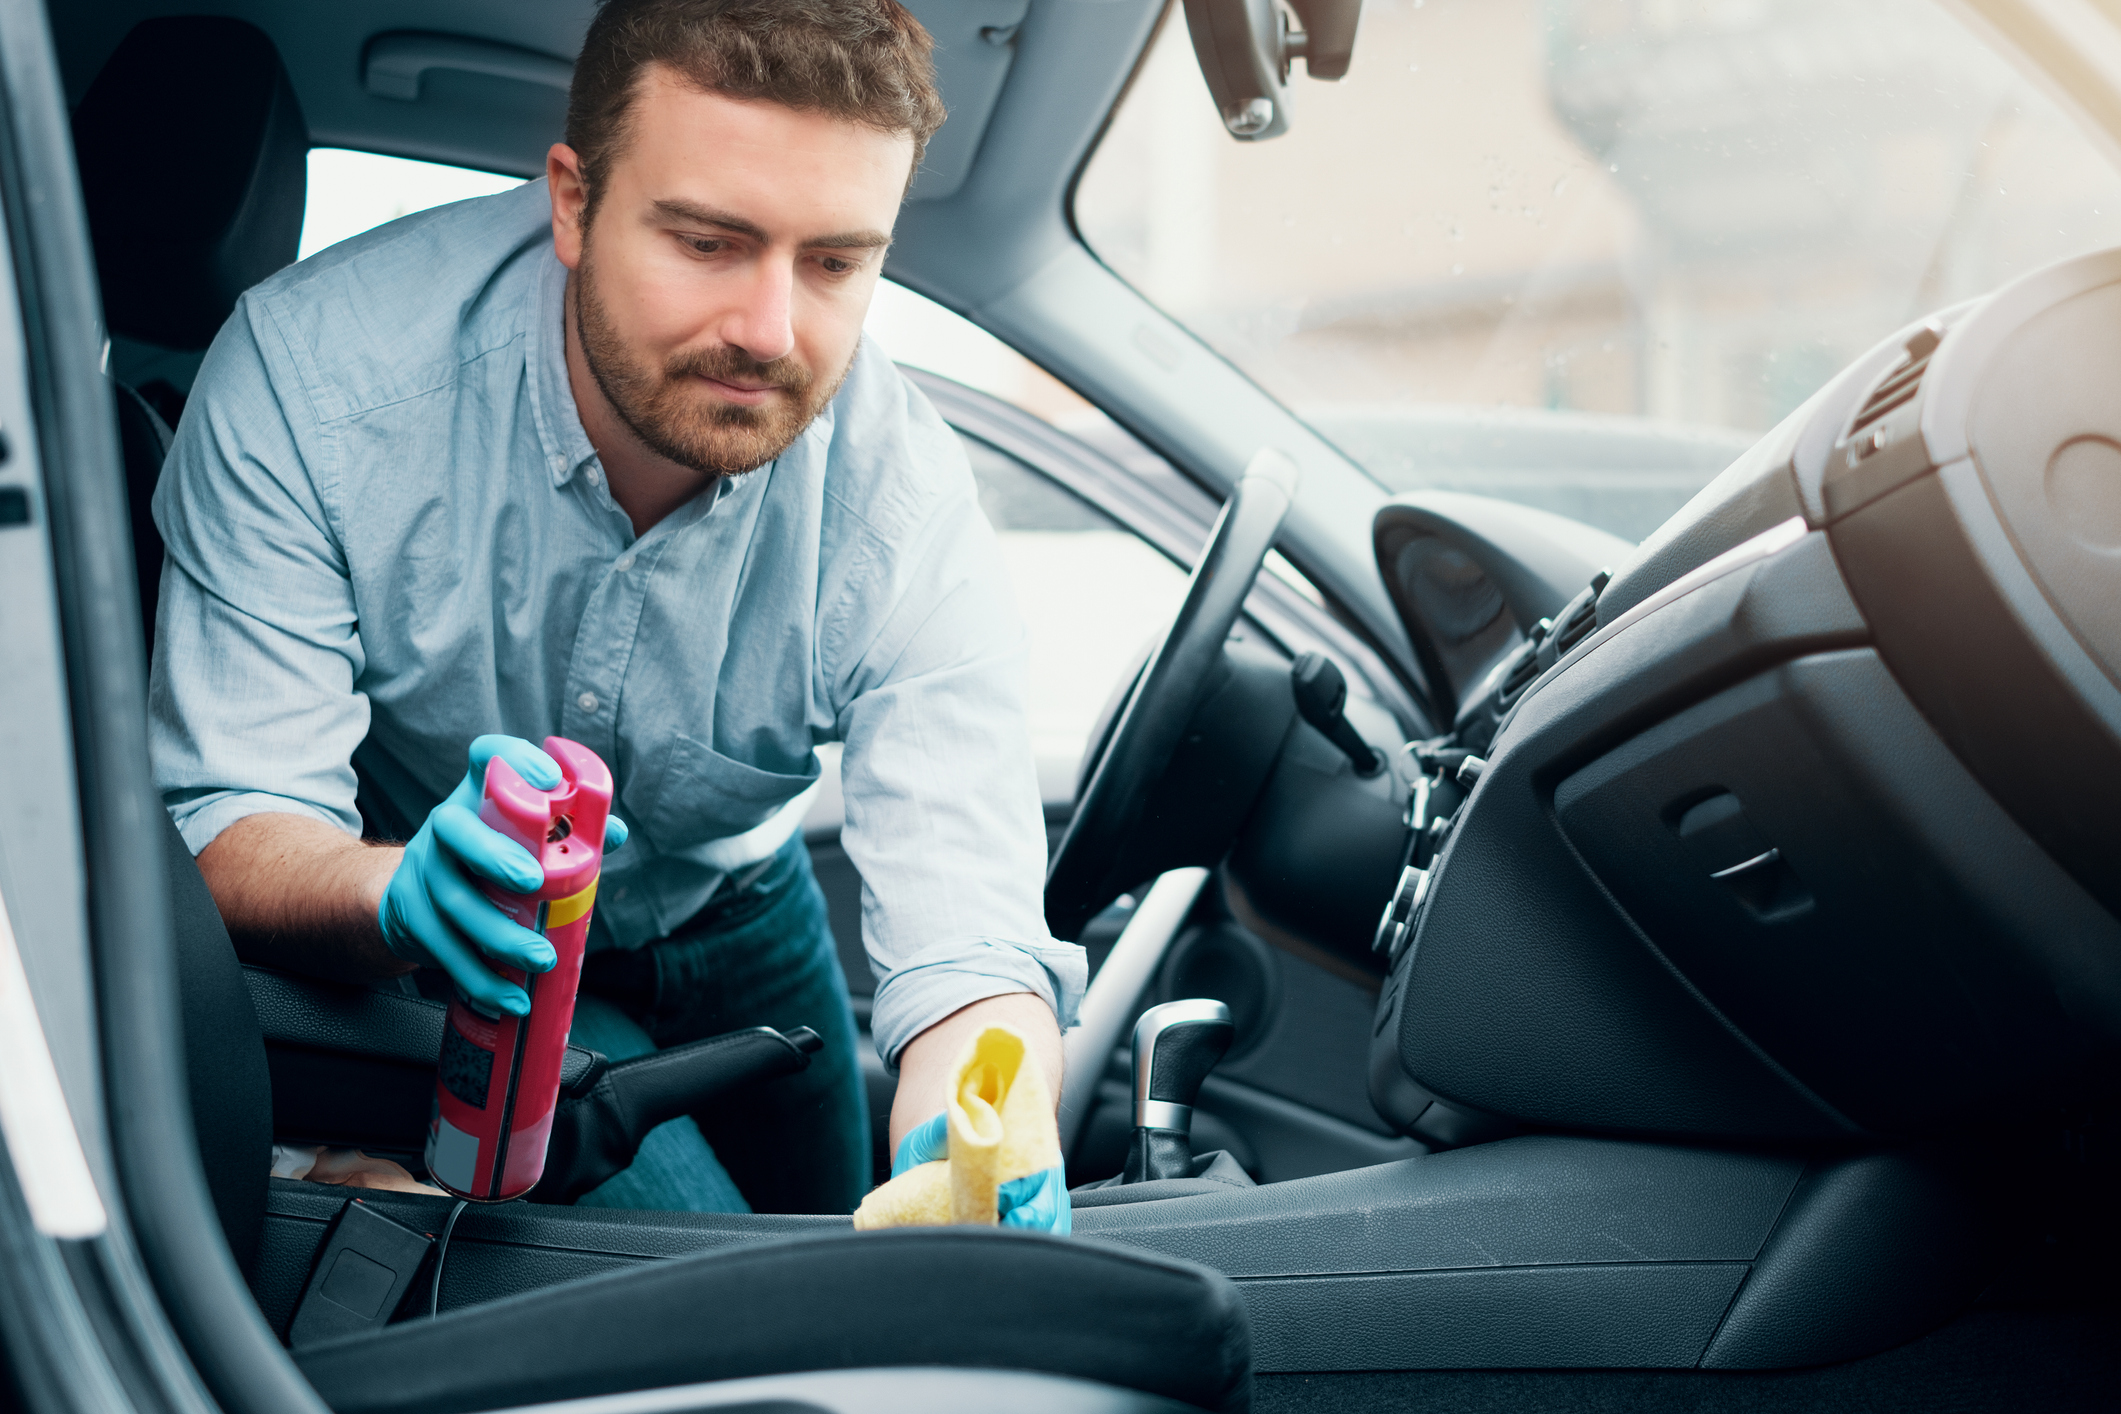 Man cleaning his car interiors and dashboard from dust